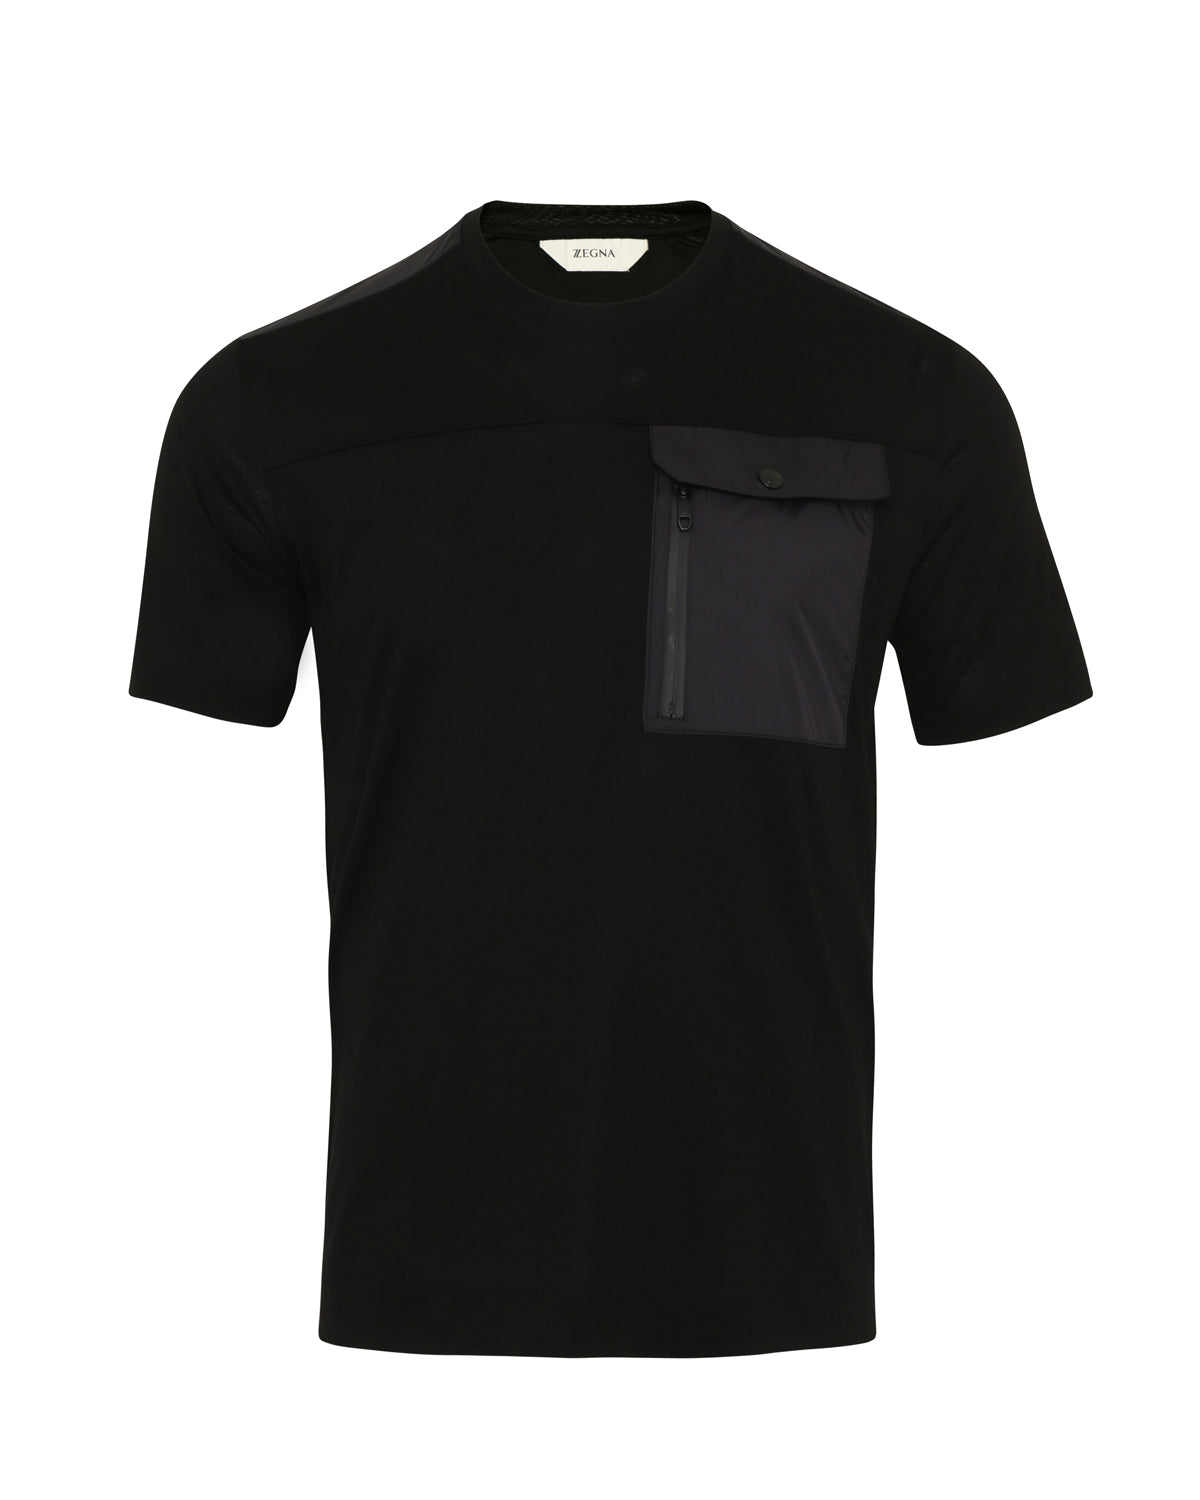 Z Zegna Cotton Pocket T-Shirt (Black) - Union 22